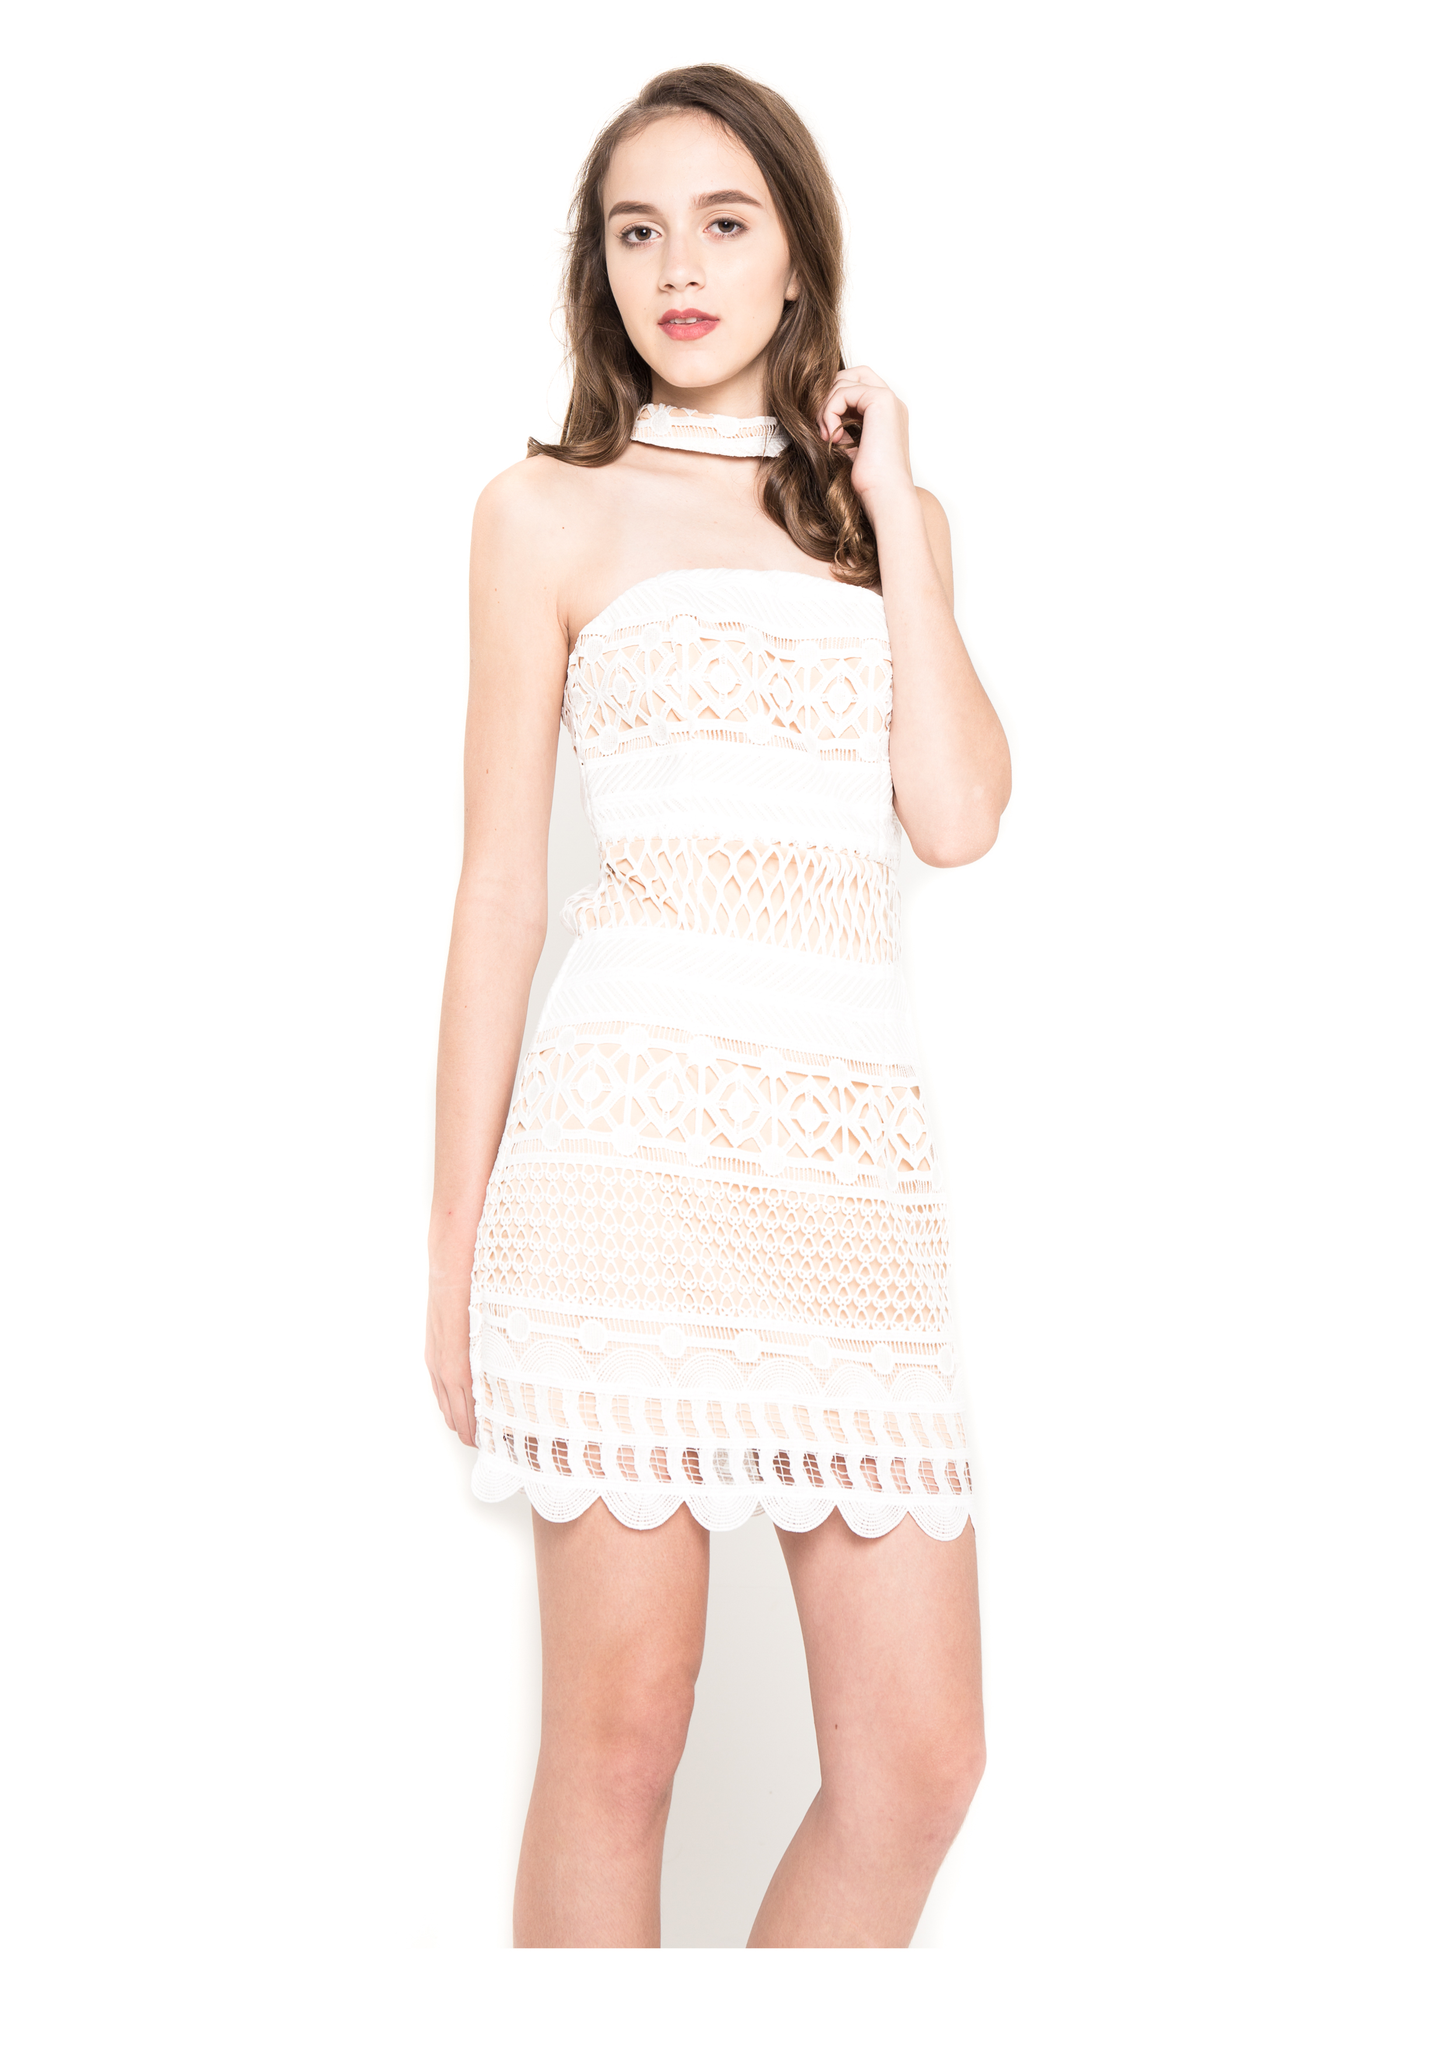 Lace Choker Dress - Moxie